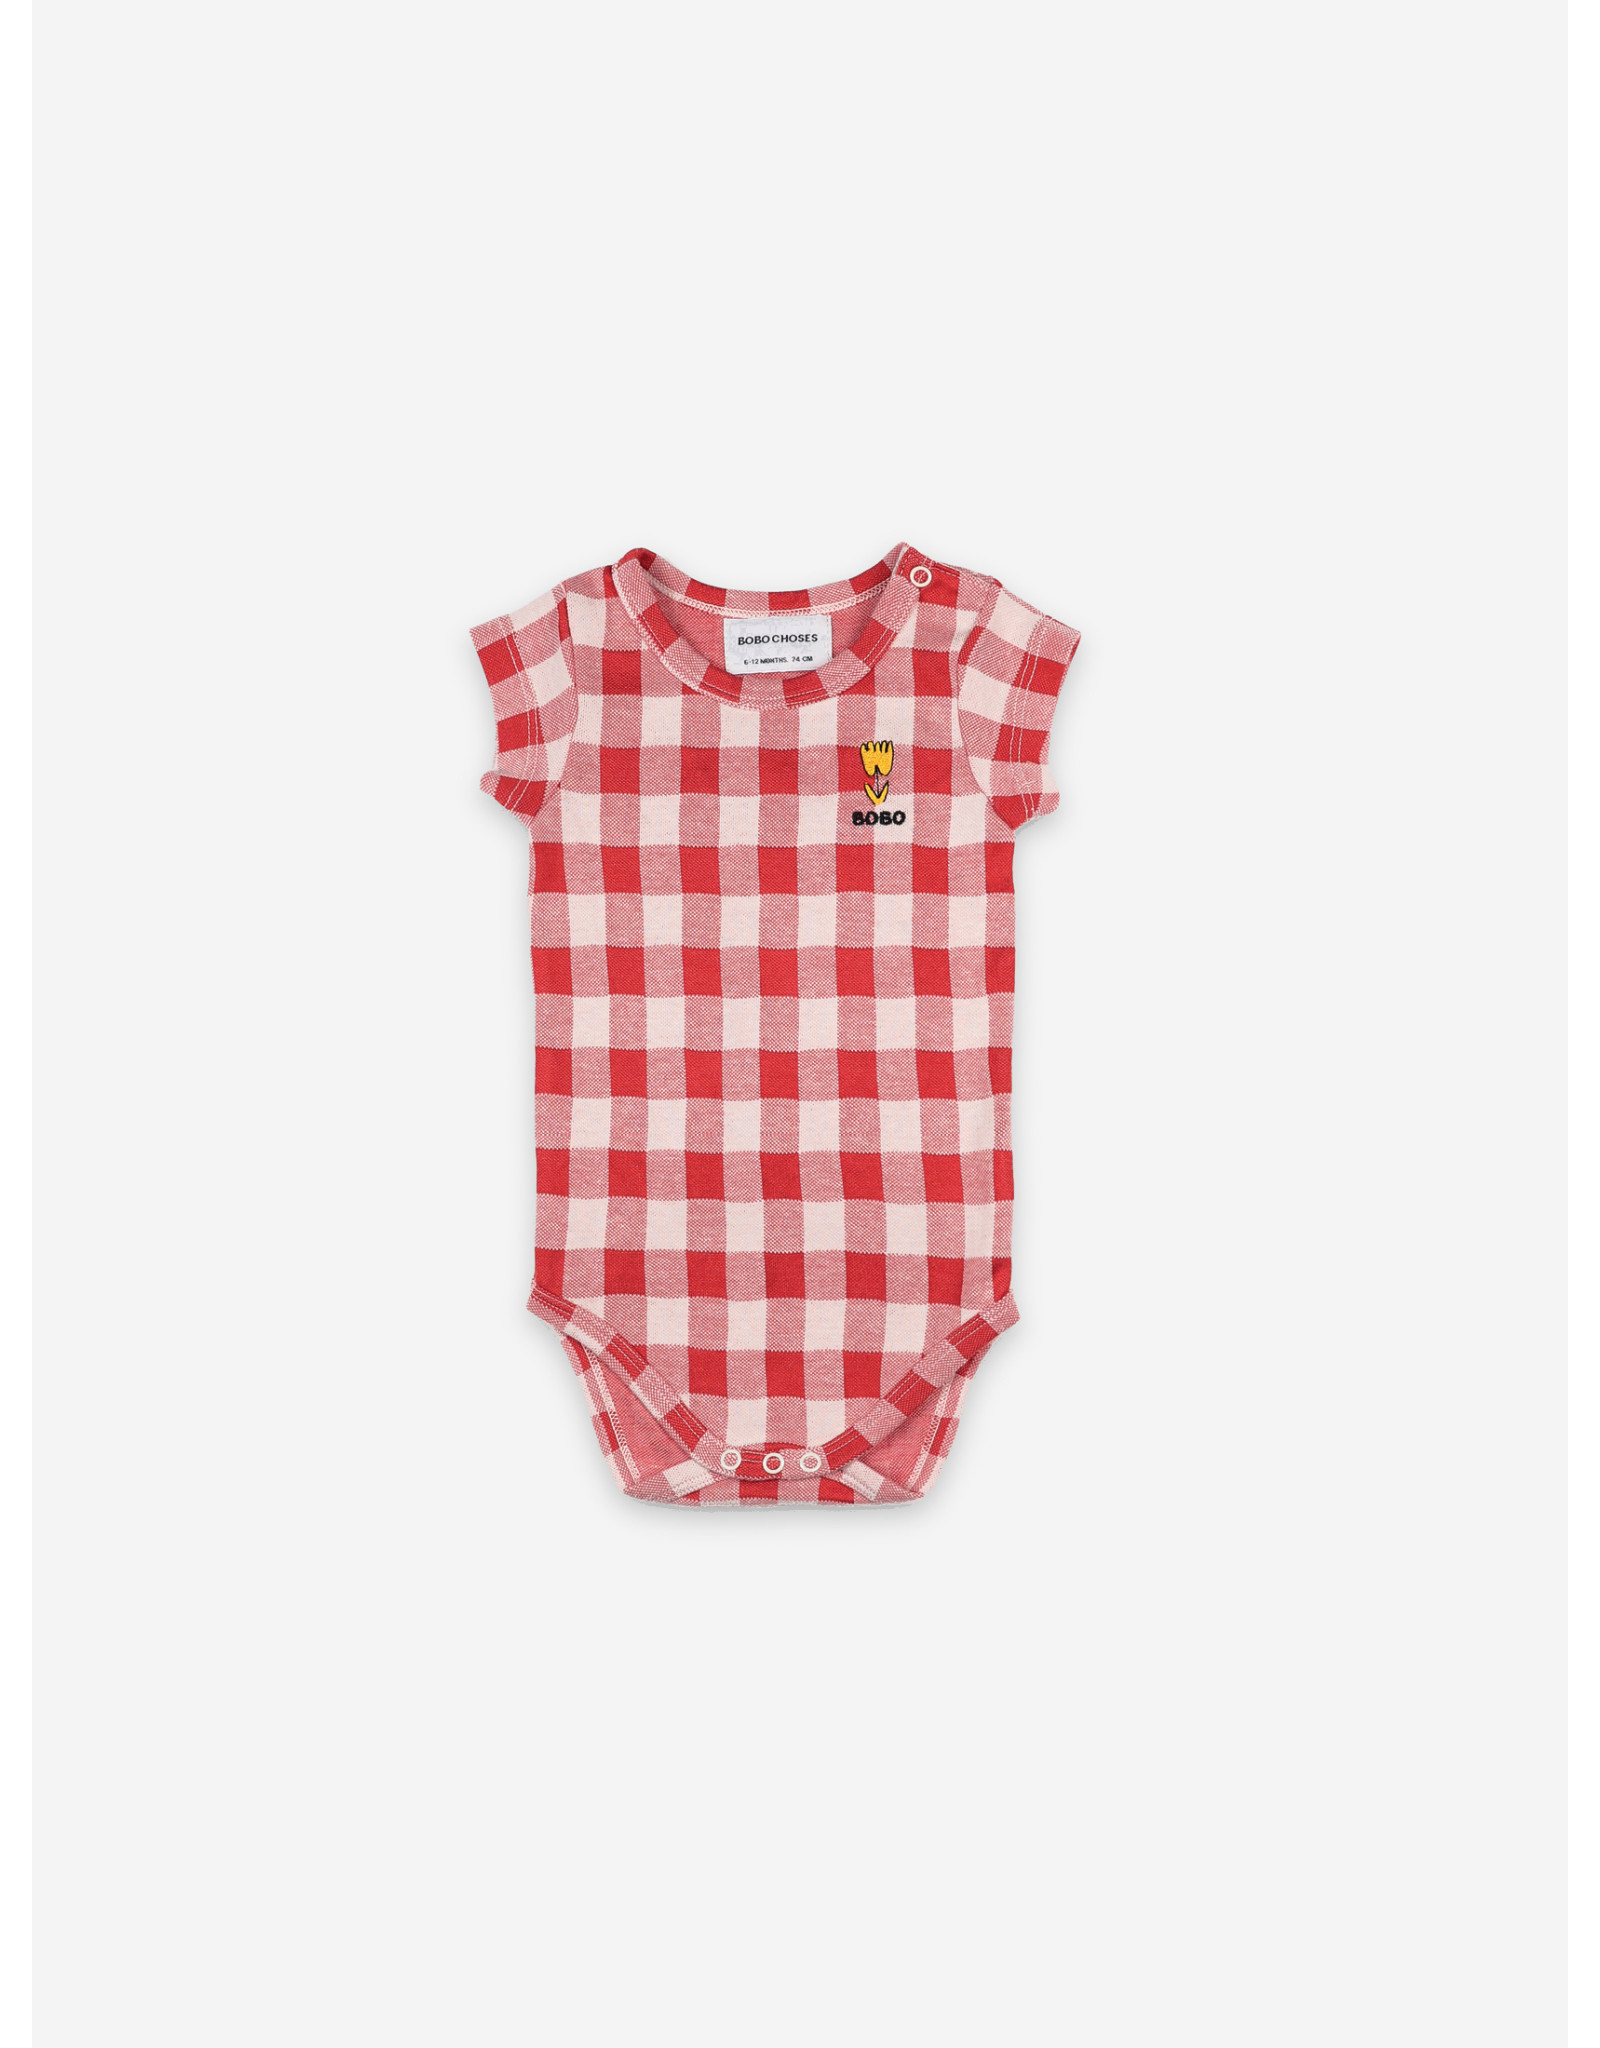 Bobo Choses Bobo Choses Vichy Short Sleeve Body